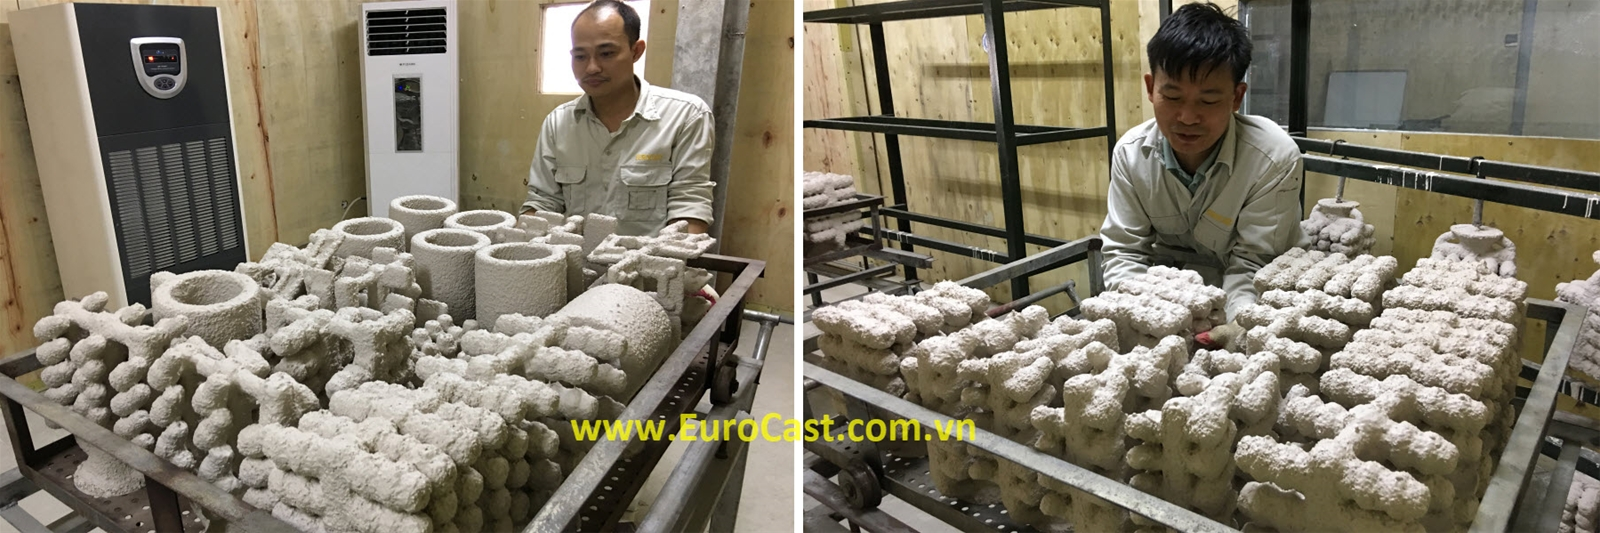 Eurocast JSC - Precission Investment Casting